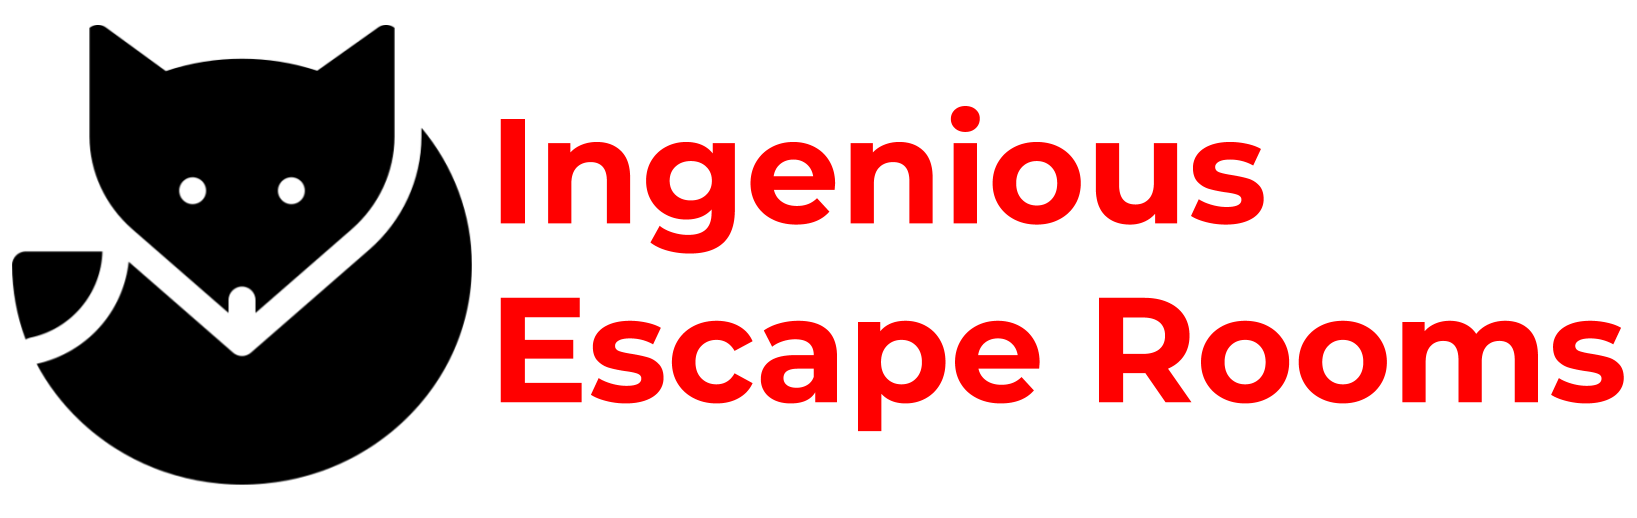 Ingenious Escape Rooms |   Events/Team Building